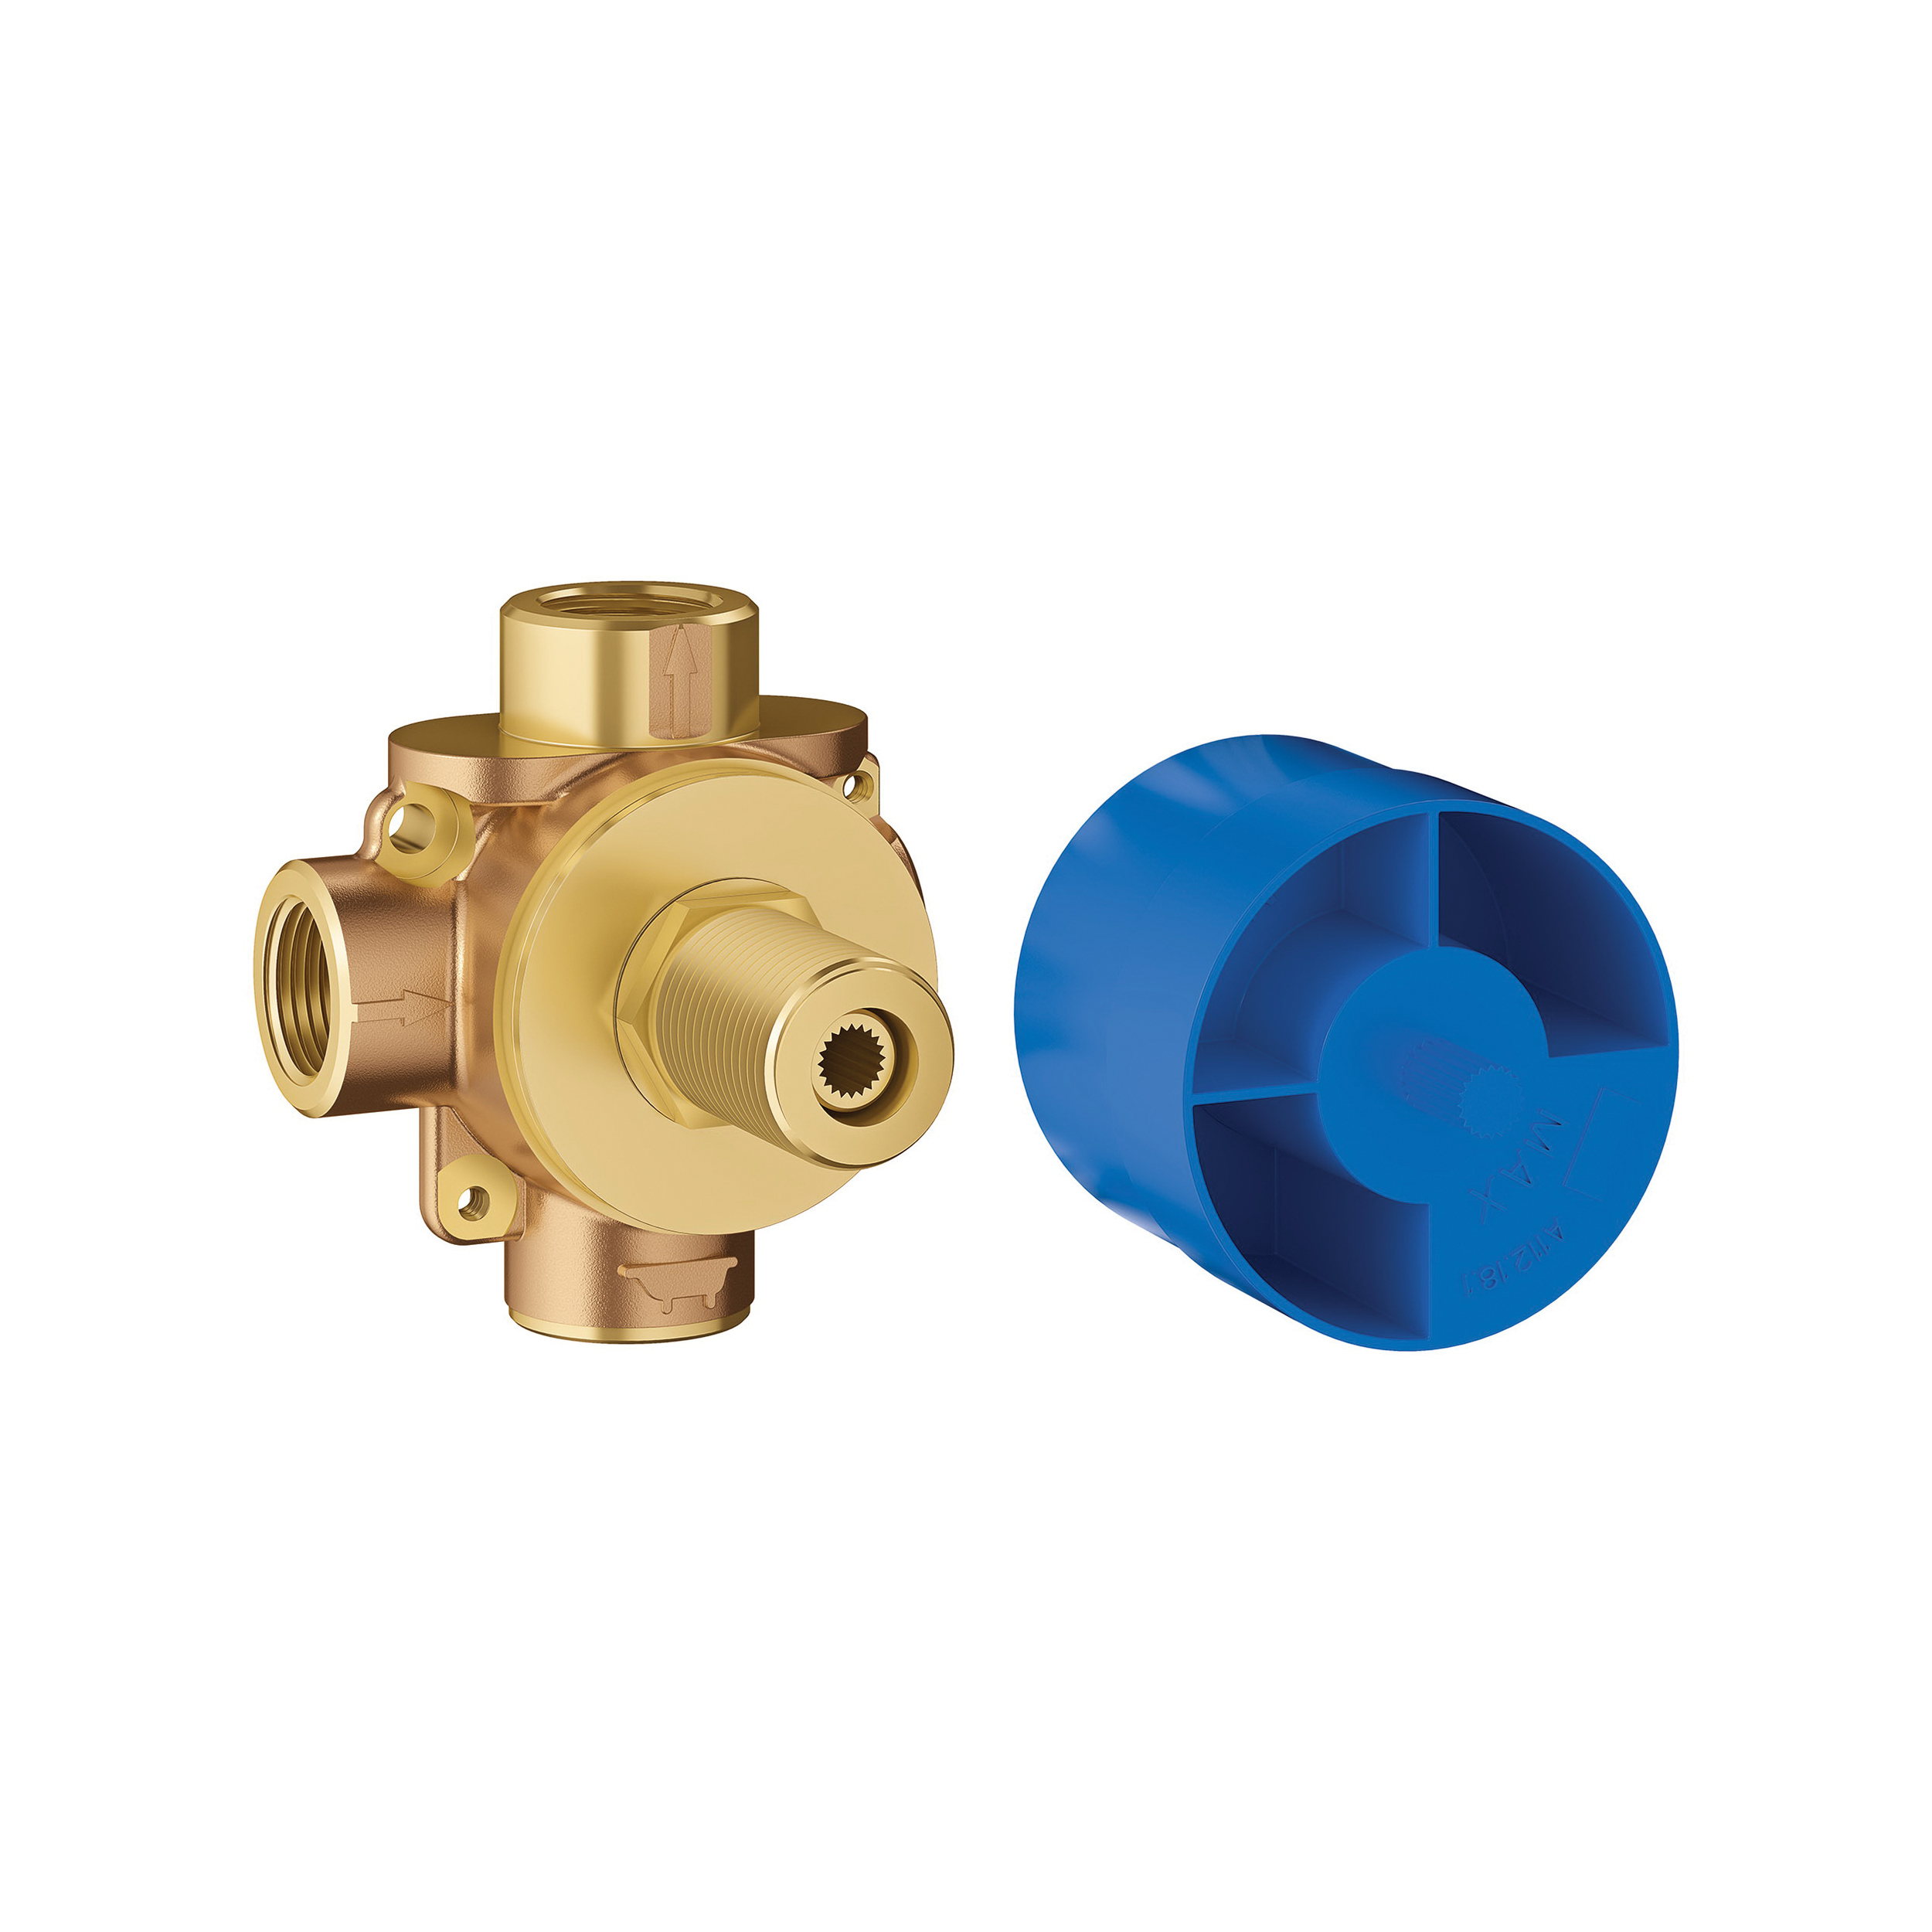 GROHE 29900000 Concetto Diverter Rough-In Valve With 1/2 in NPT Plasterguard, 1/2 in FNPT Inlet x 1/2 in FNPT Outlet, 2 Ways, Metal Body, Import